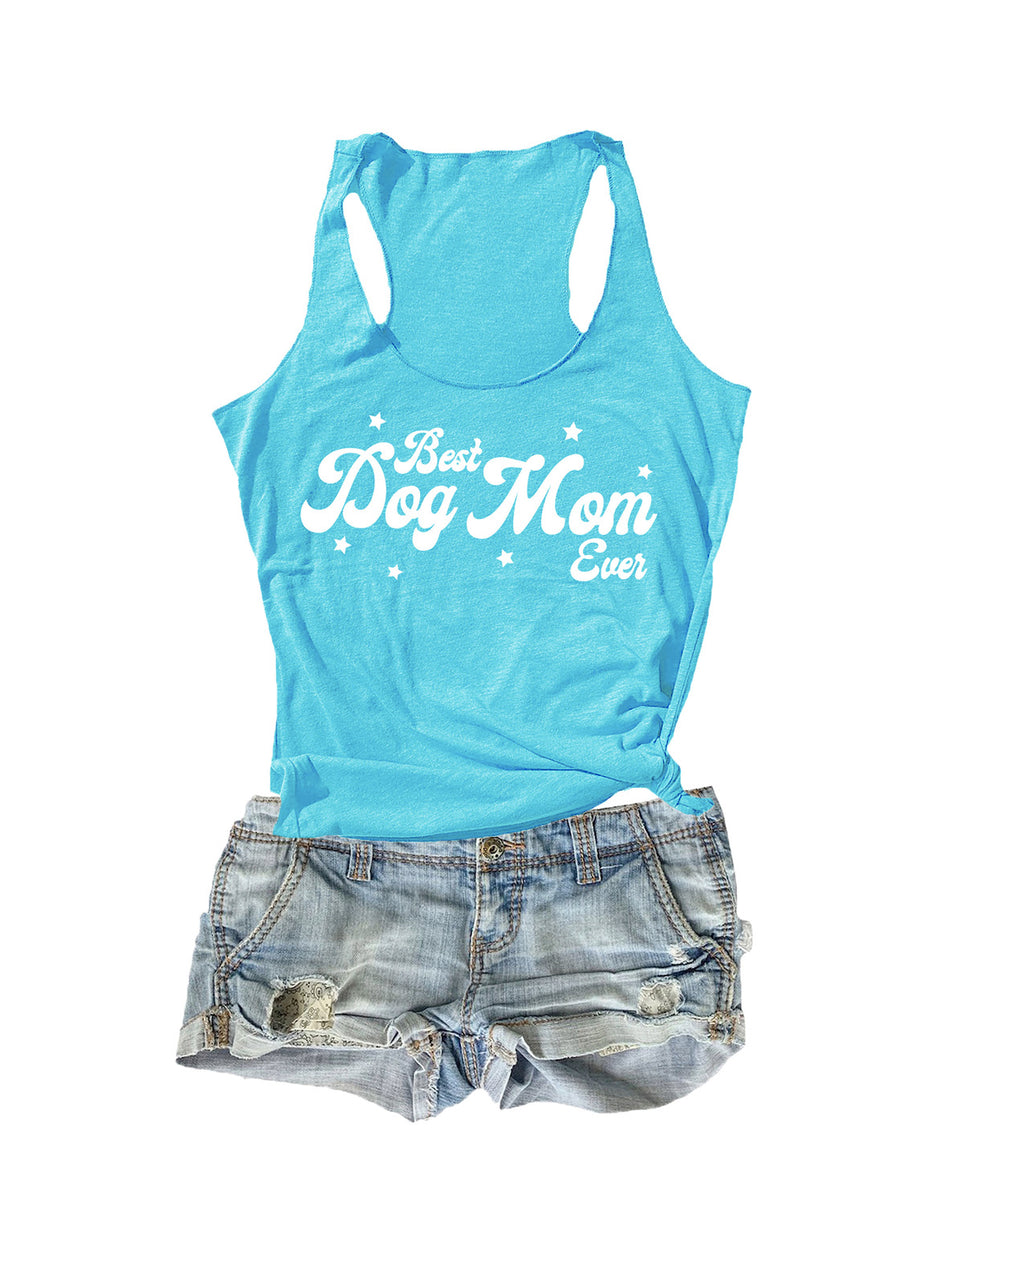 BEST DOG MOM EVER TANK TOP